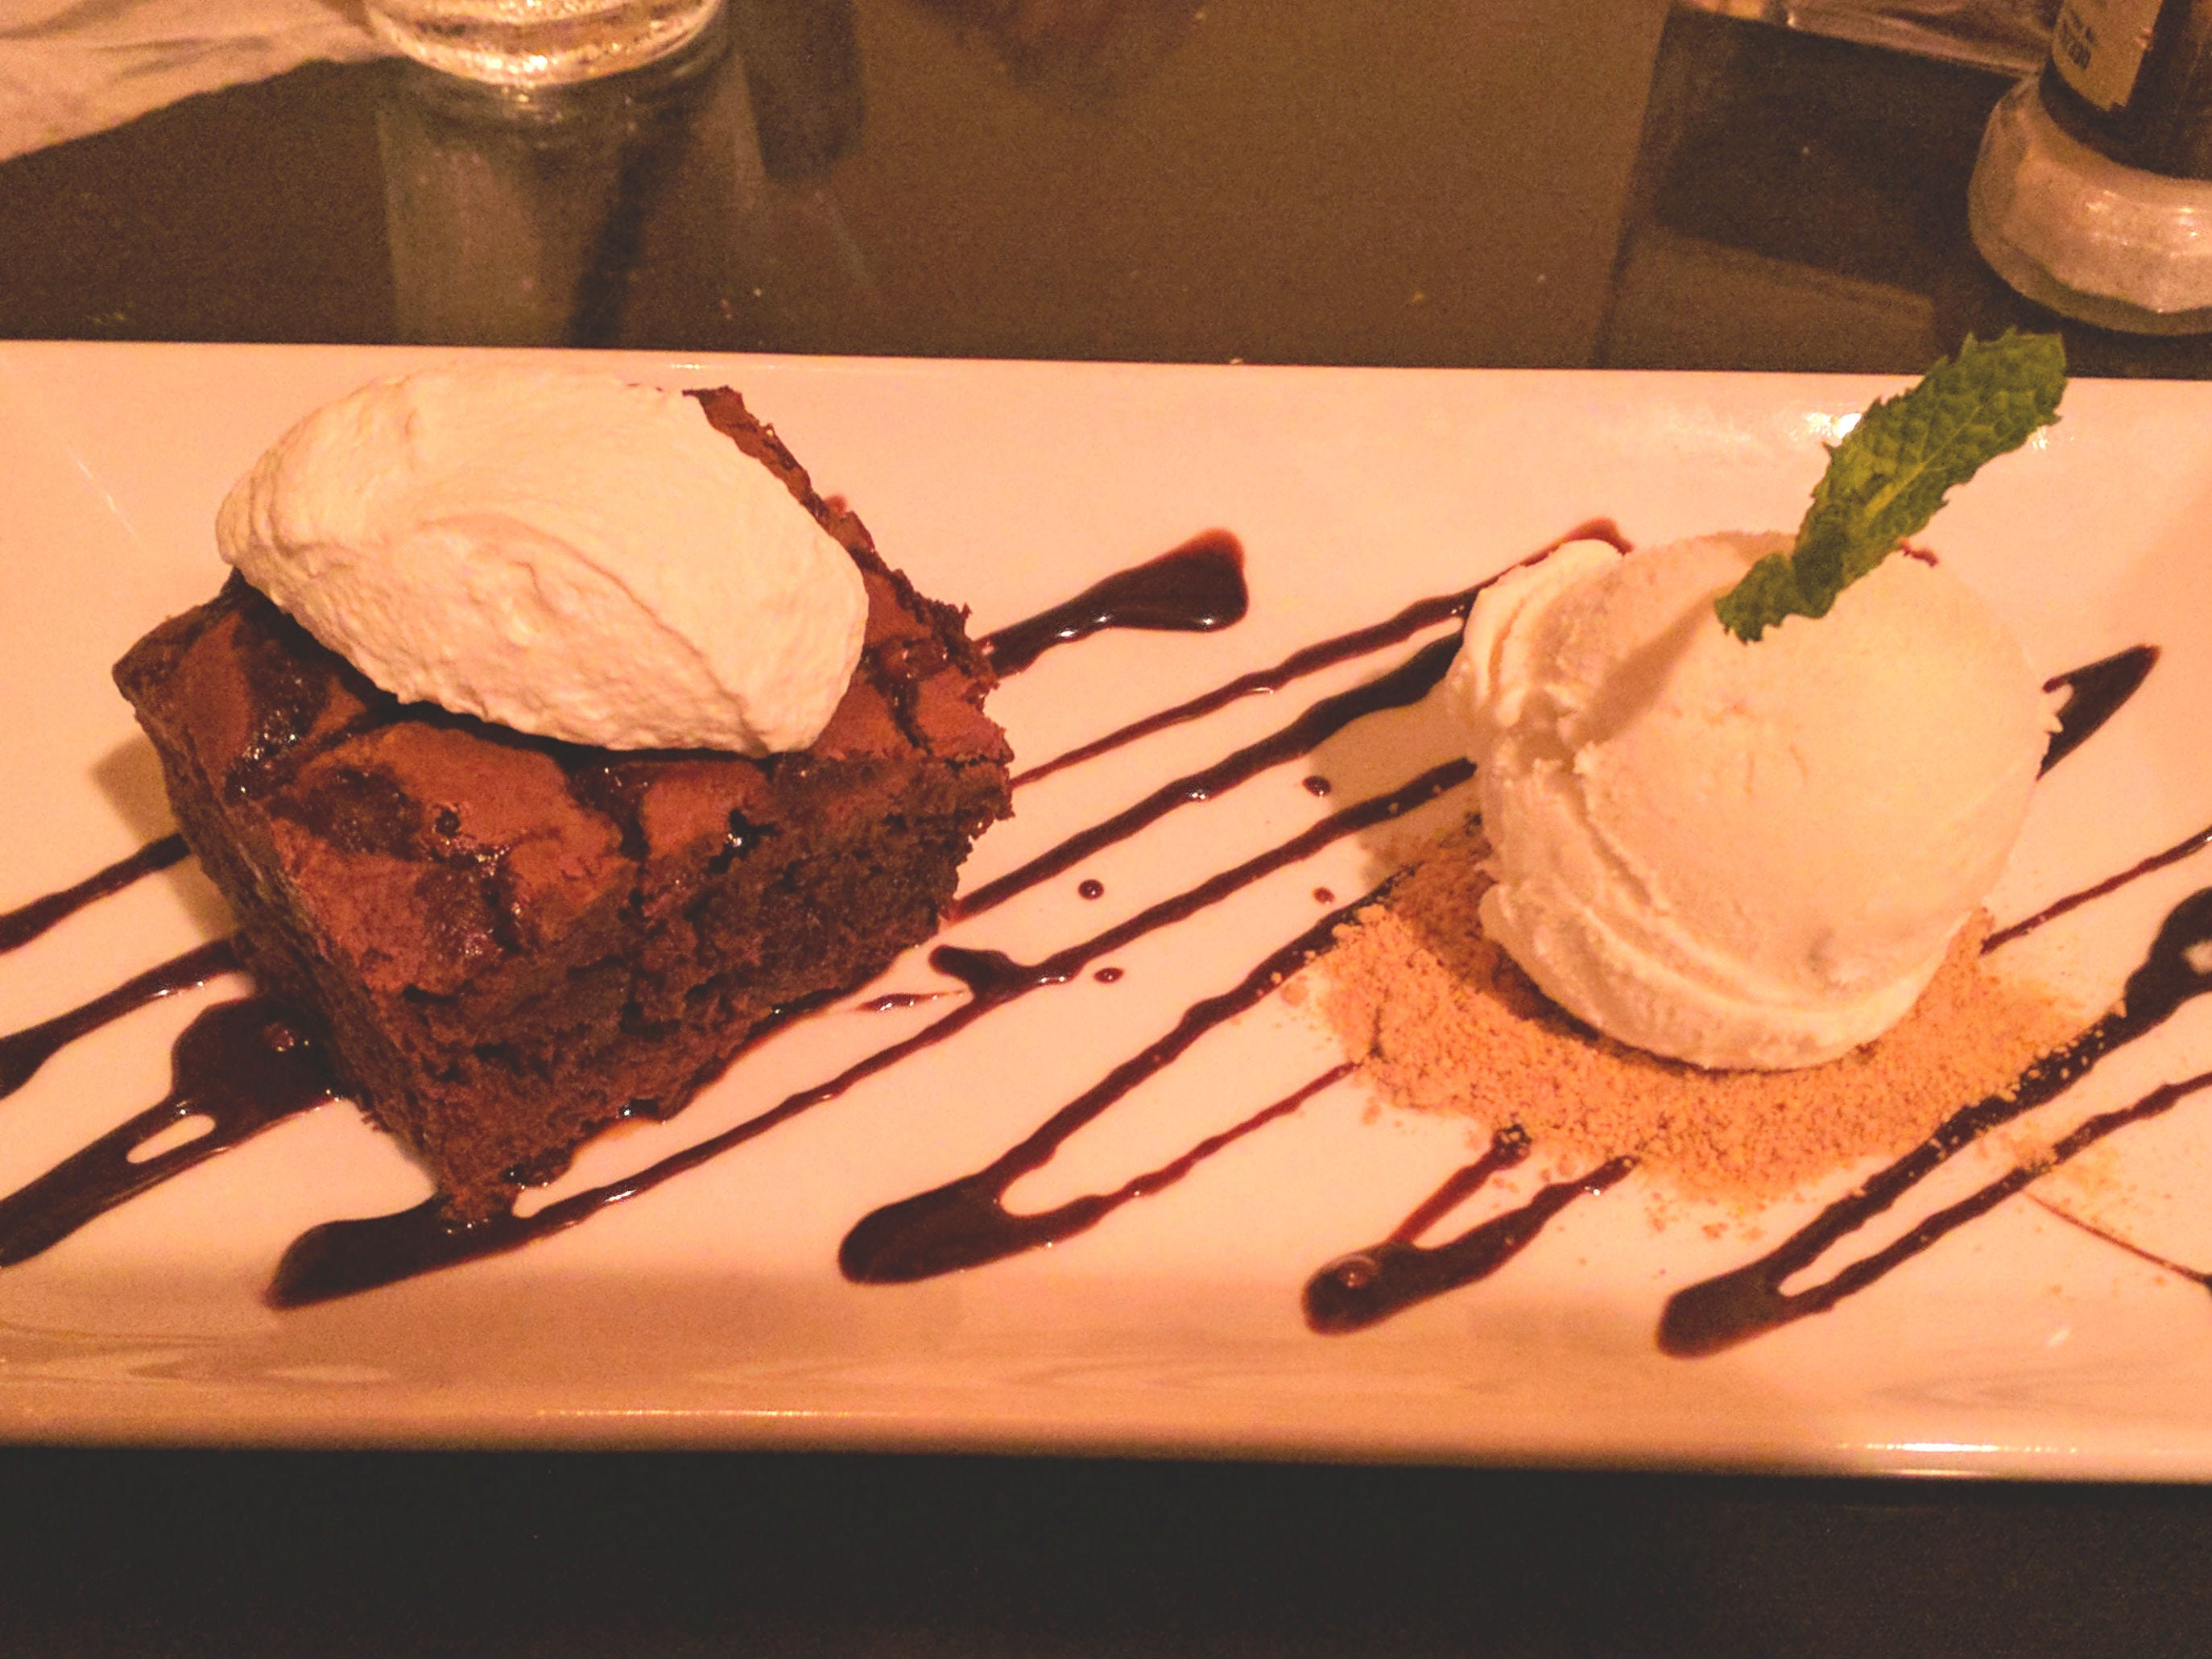 Havana Nights' brownie with whipped cream, chocolate sauce and a scoop of vanilla ice cream.